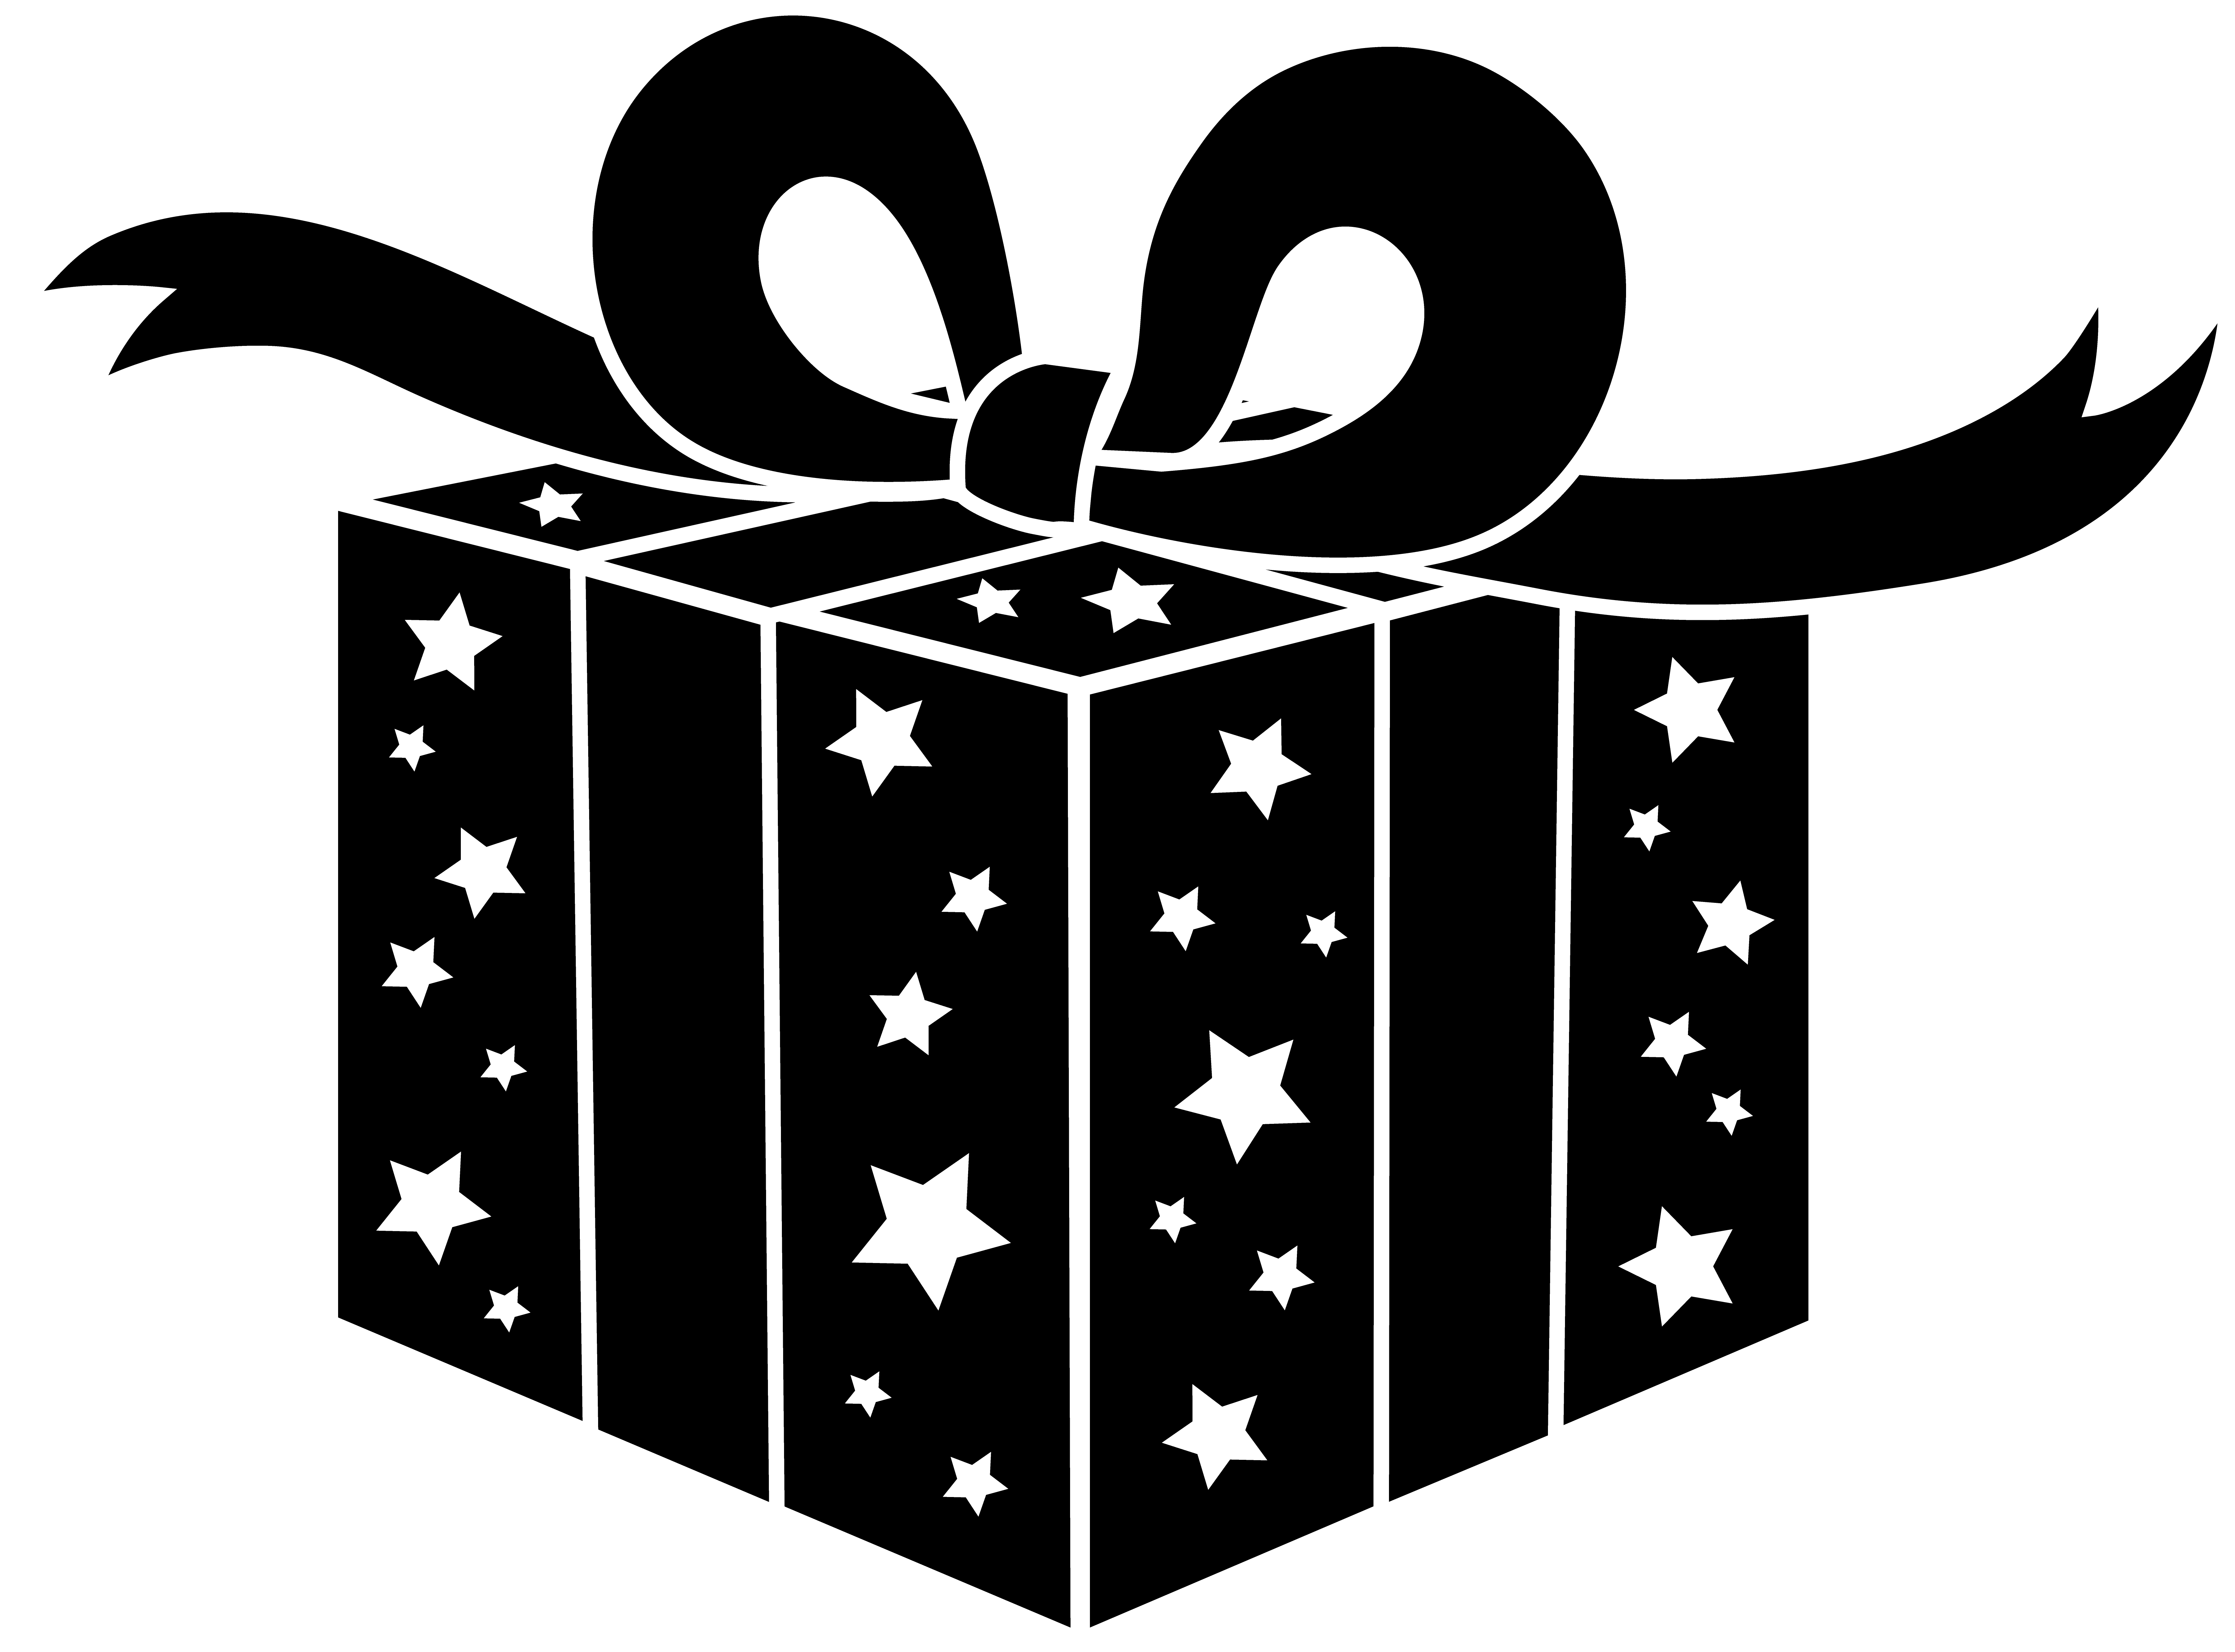 Free clipart christmas presents clipart transparent stock presents png file | Black and White Party Gift - Free Clip Art ... clipart transparent stock